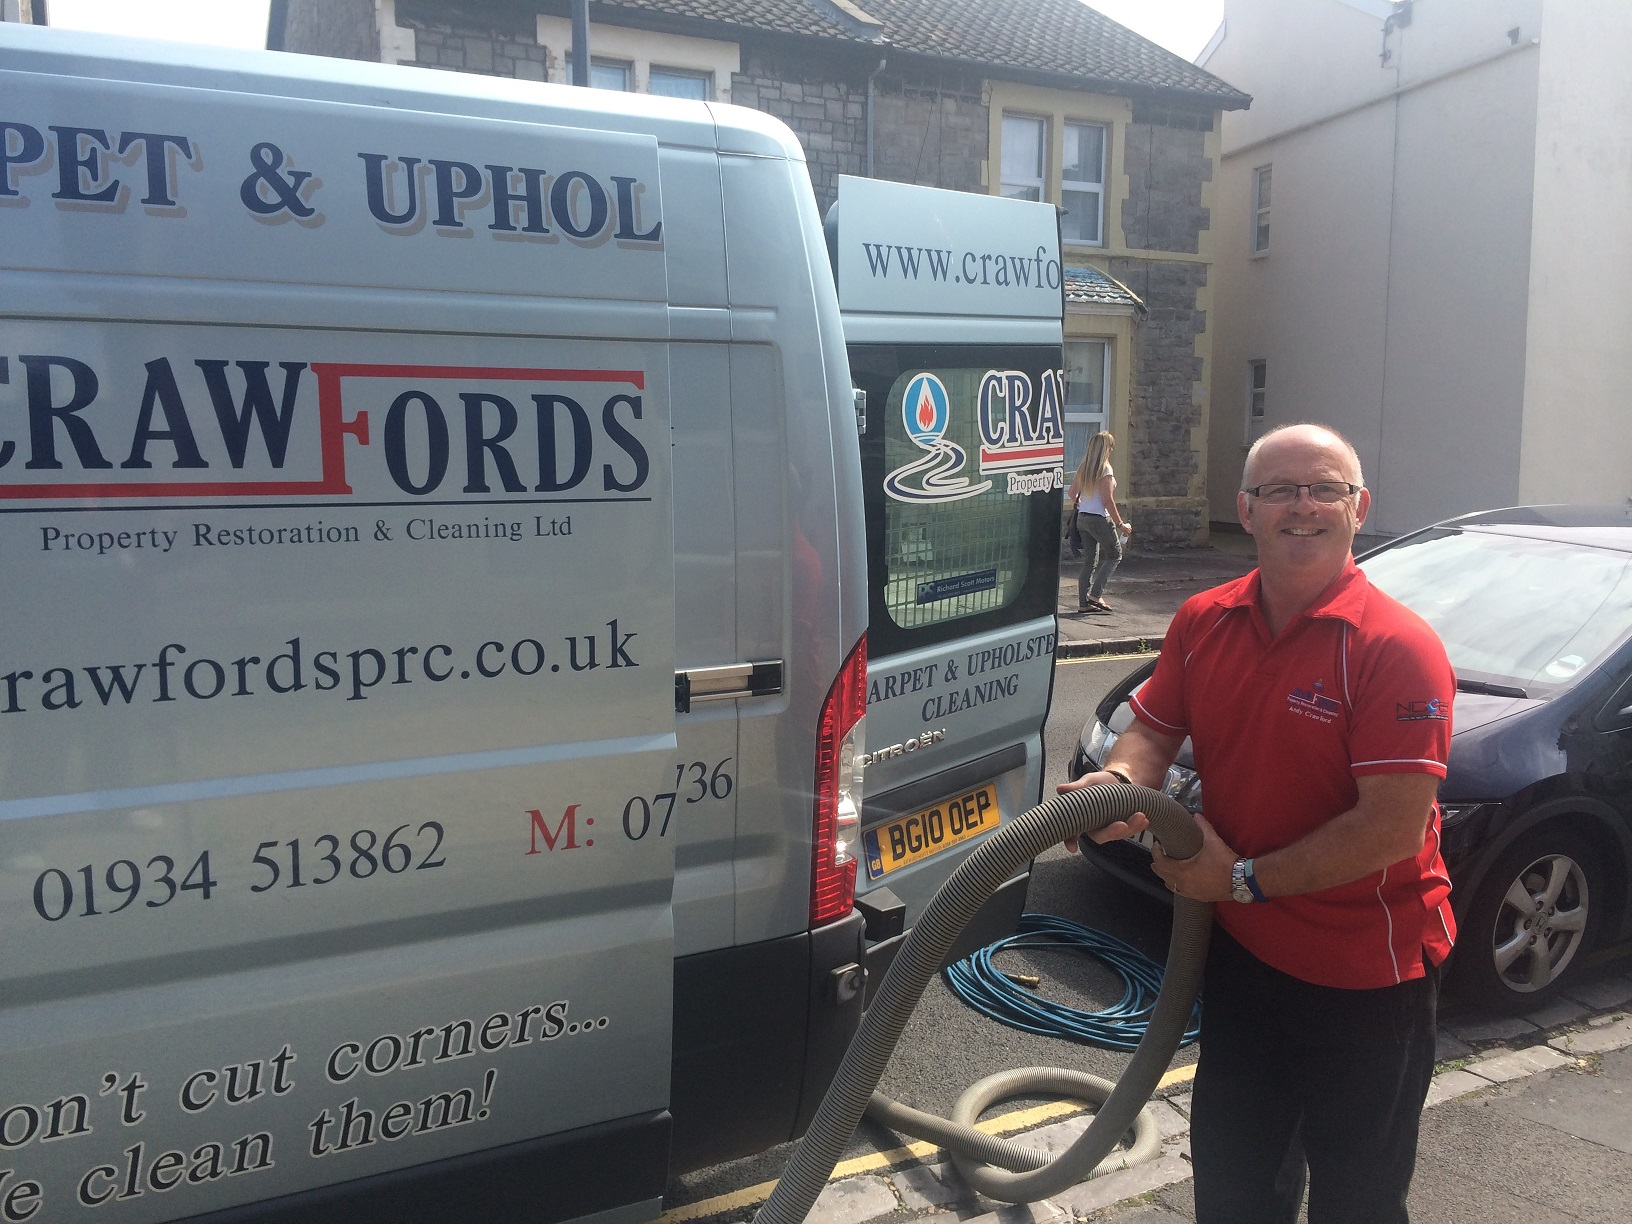 Carpet Cleaning Andy Crawfords Weston super Mare Somerset